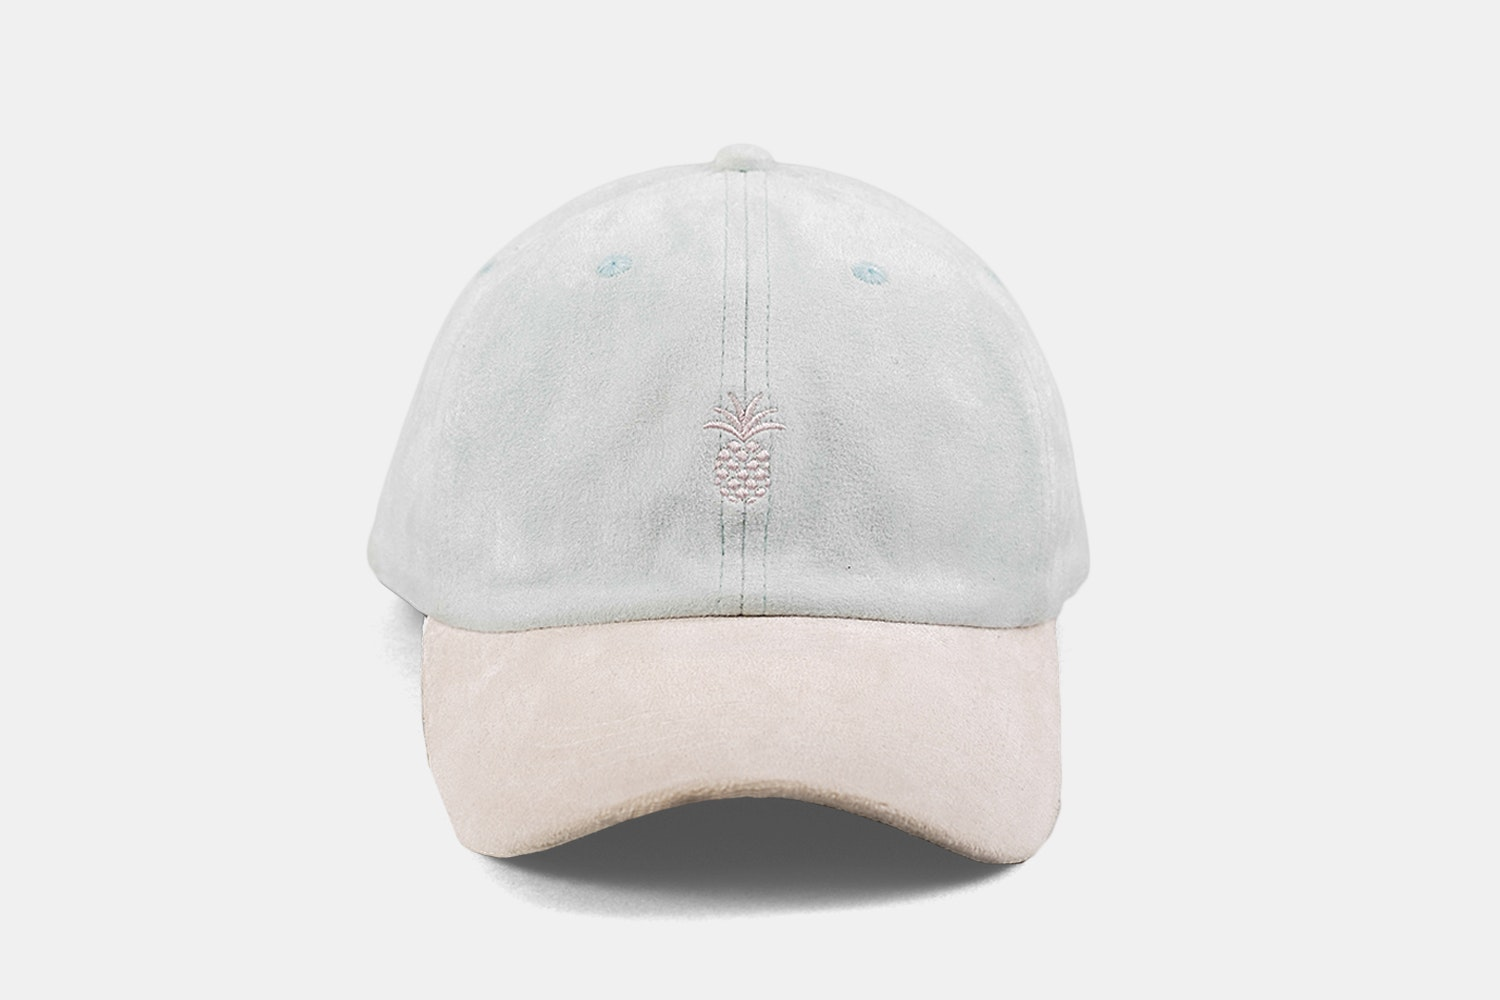 Pineapple Two-Tone Cap - Powder Blue & Orchid